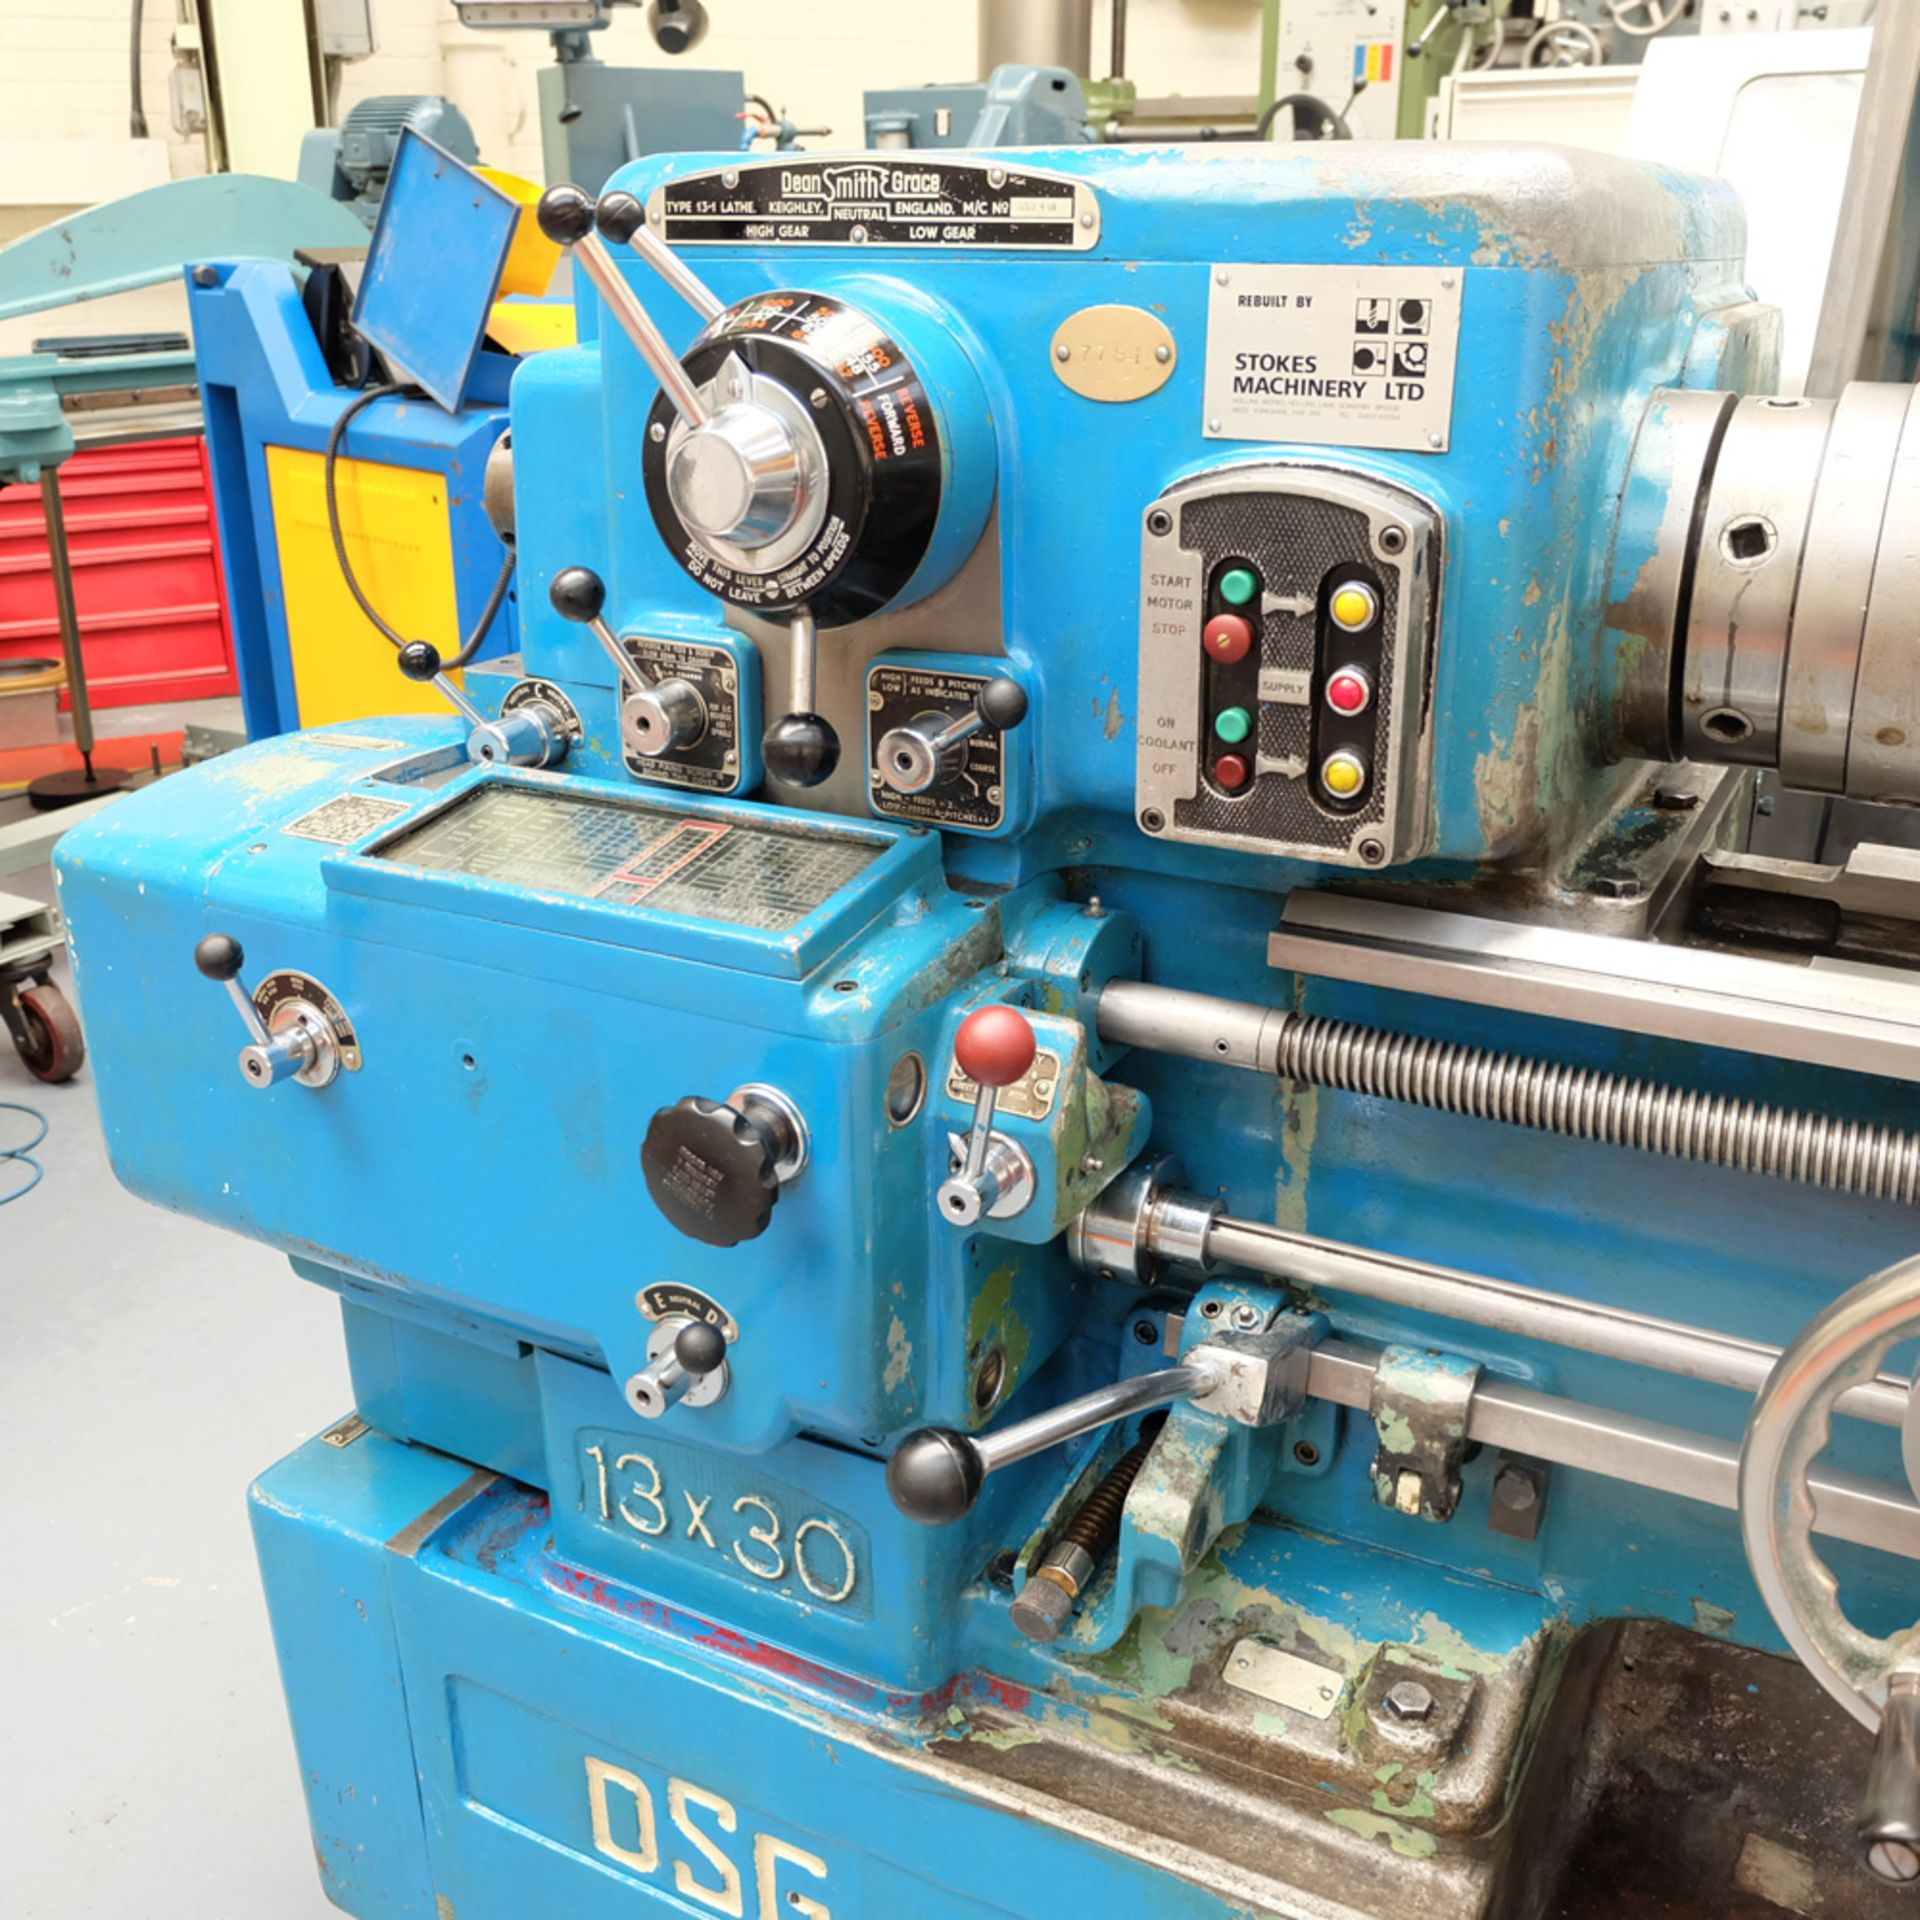 Dean Smith & Grace Type 13-1 Tool Room Centre Lathe. - Image 2 of 13